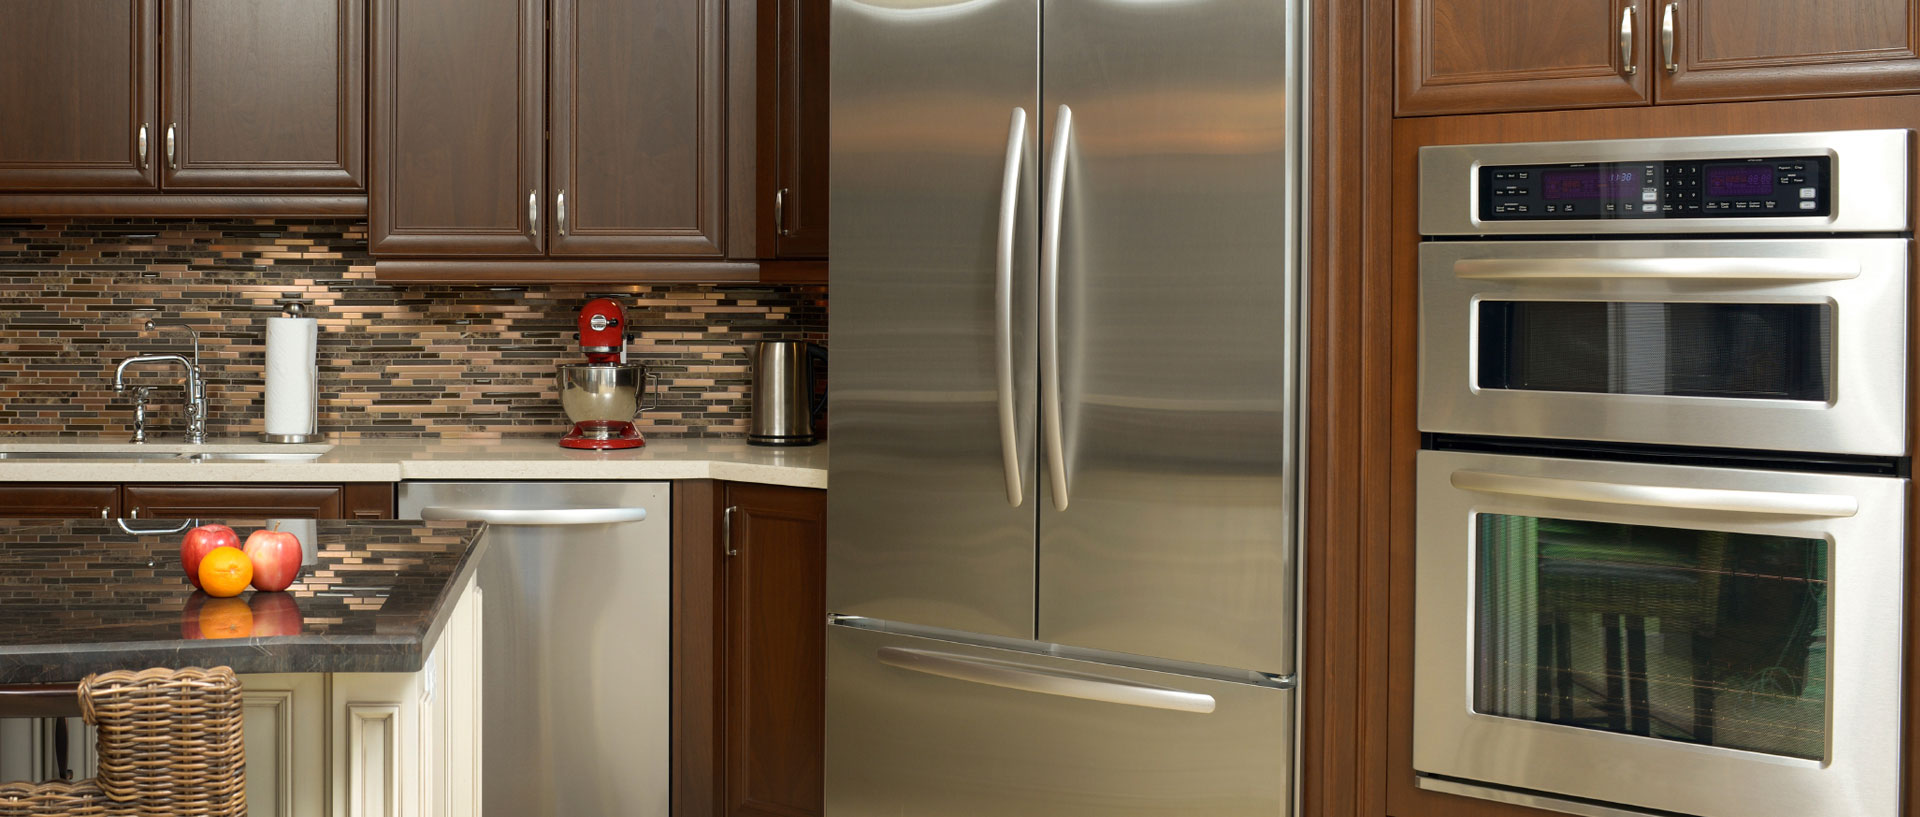 The Best FrenchDoor Refrigerators  Consumer Reports